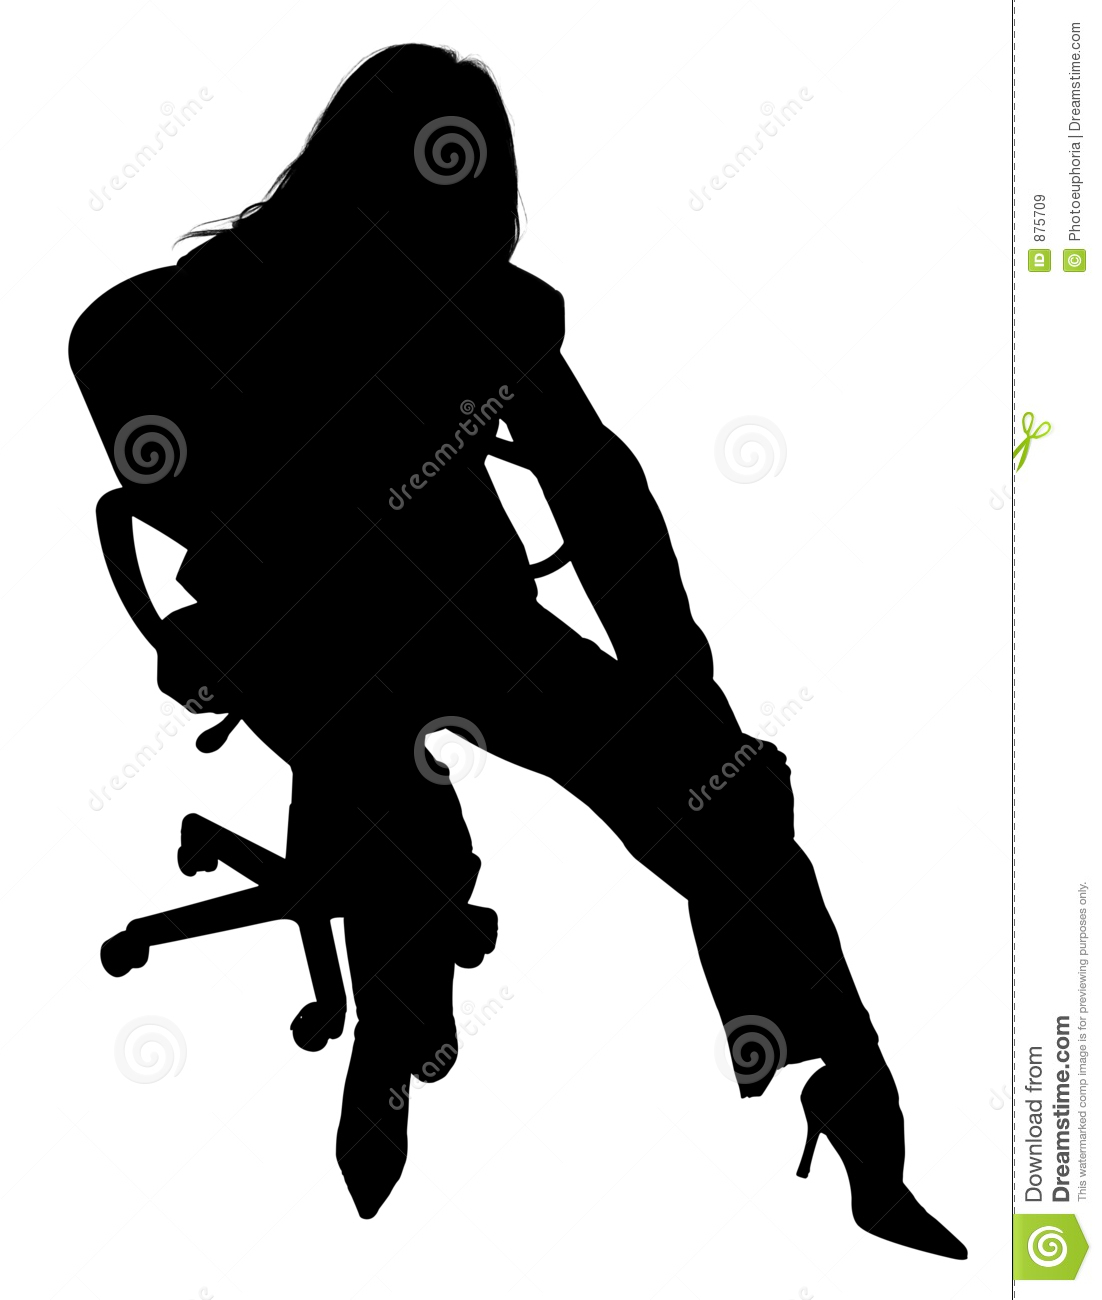 Silhouette Of Woman In Chair Royalty Free Stock Images - Image: 875709